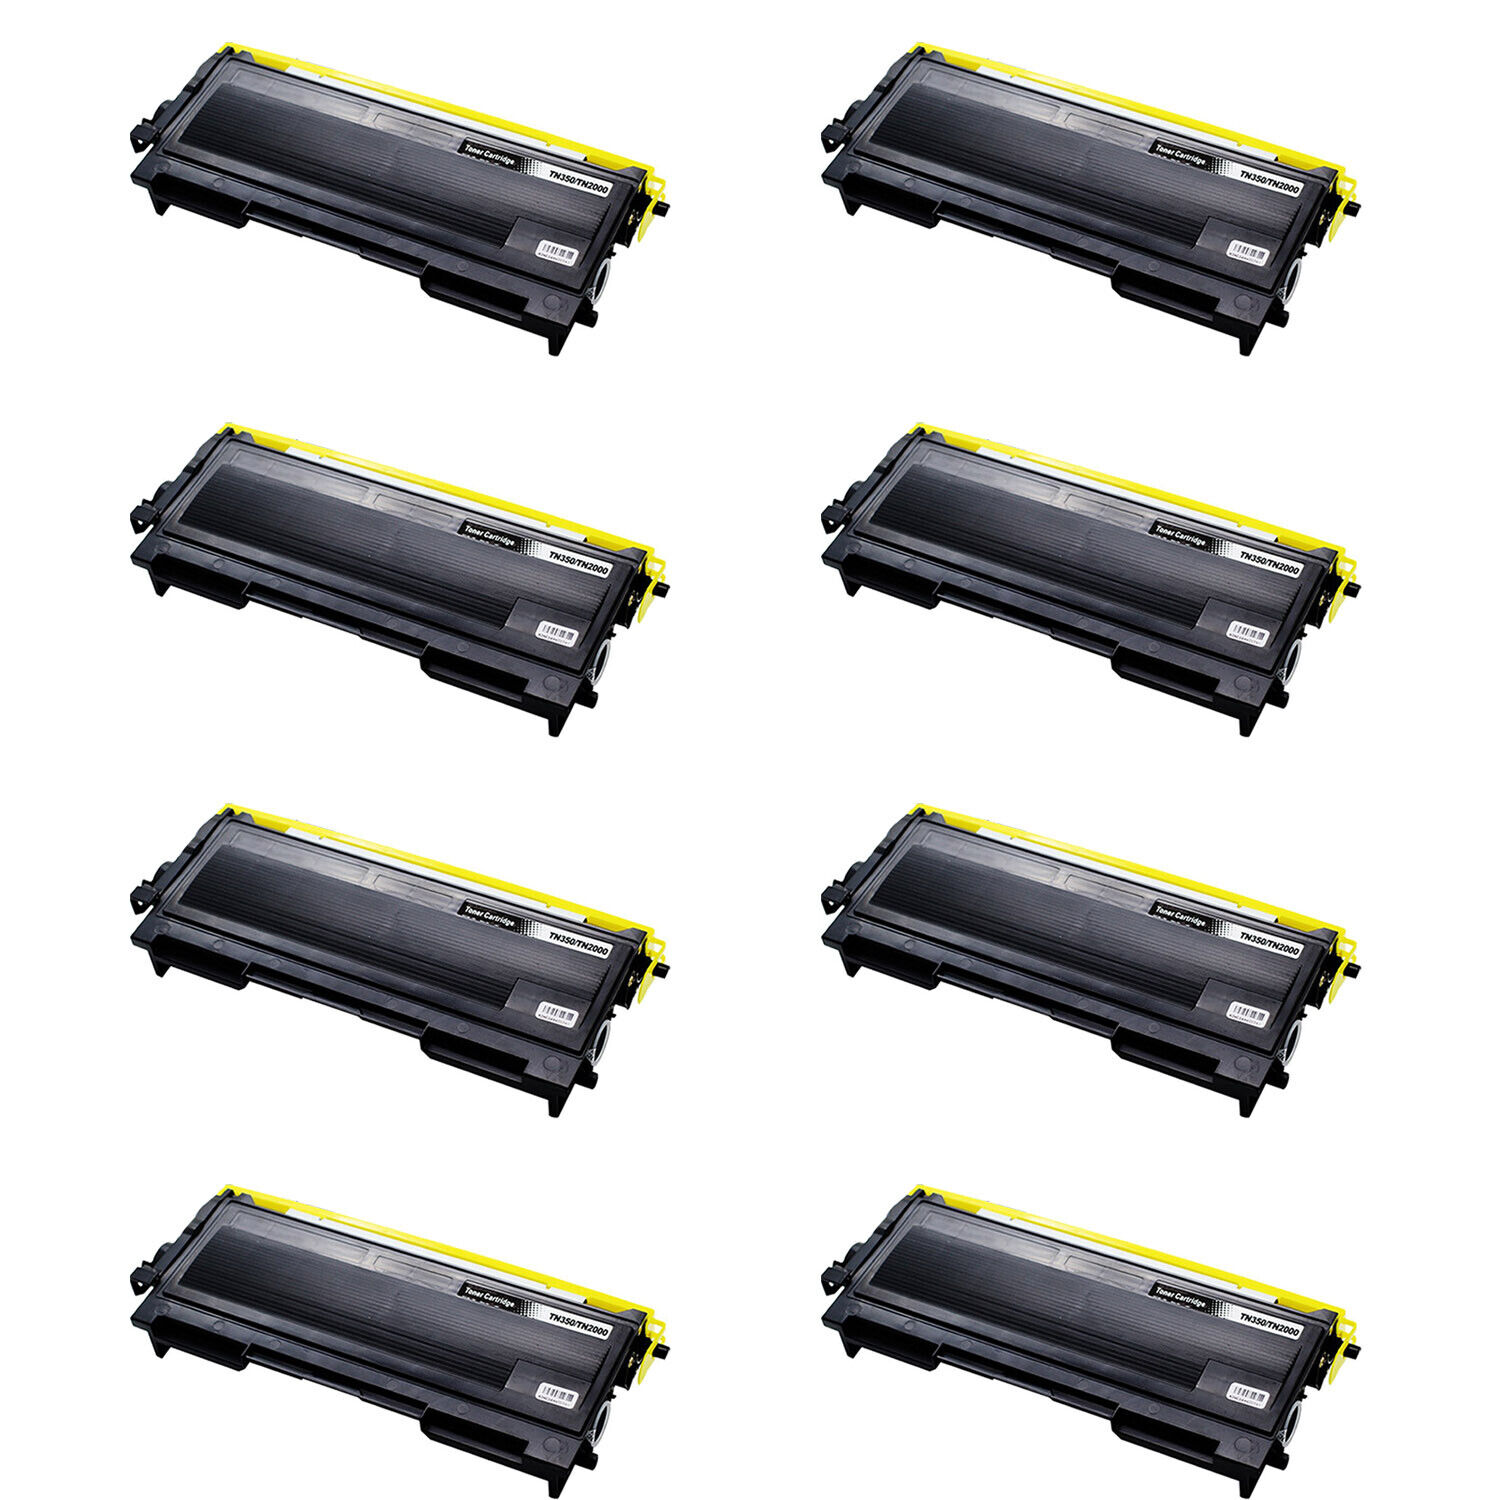 8pk tn350 toner cartridge for brother hl 2035 2045 2050. Black Bedroom Furniture Sets. Home Design Ideas